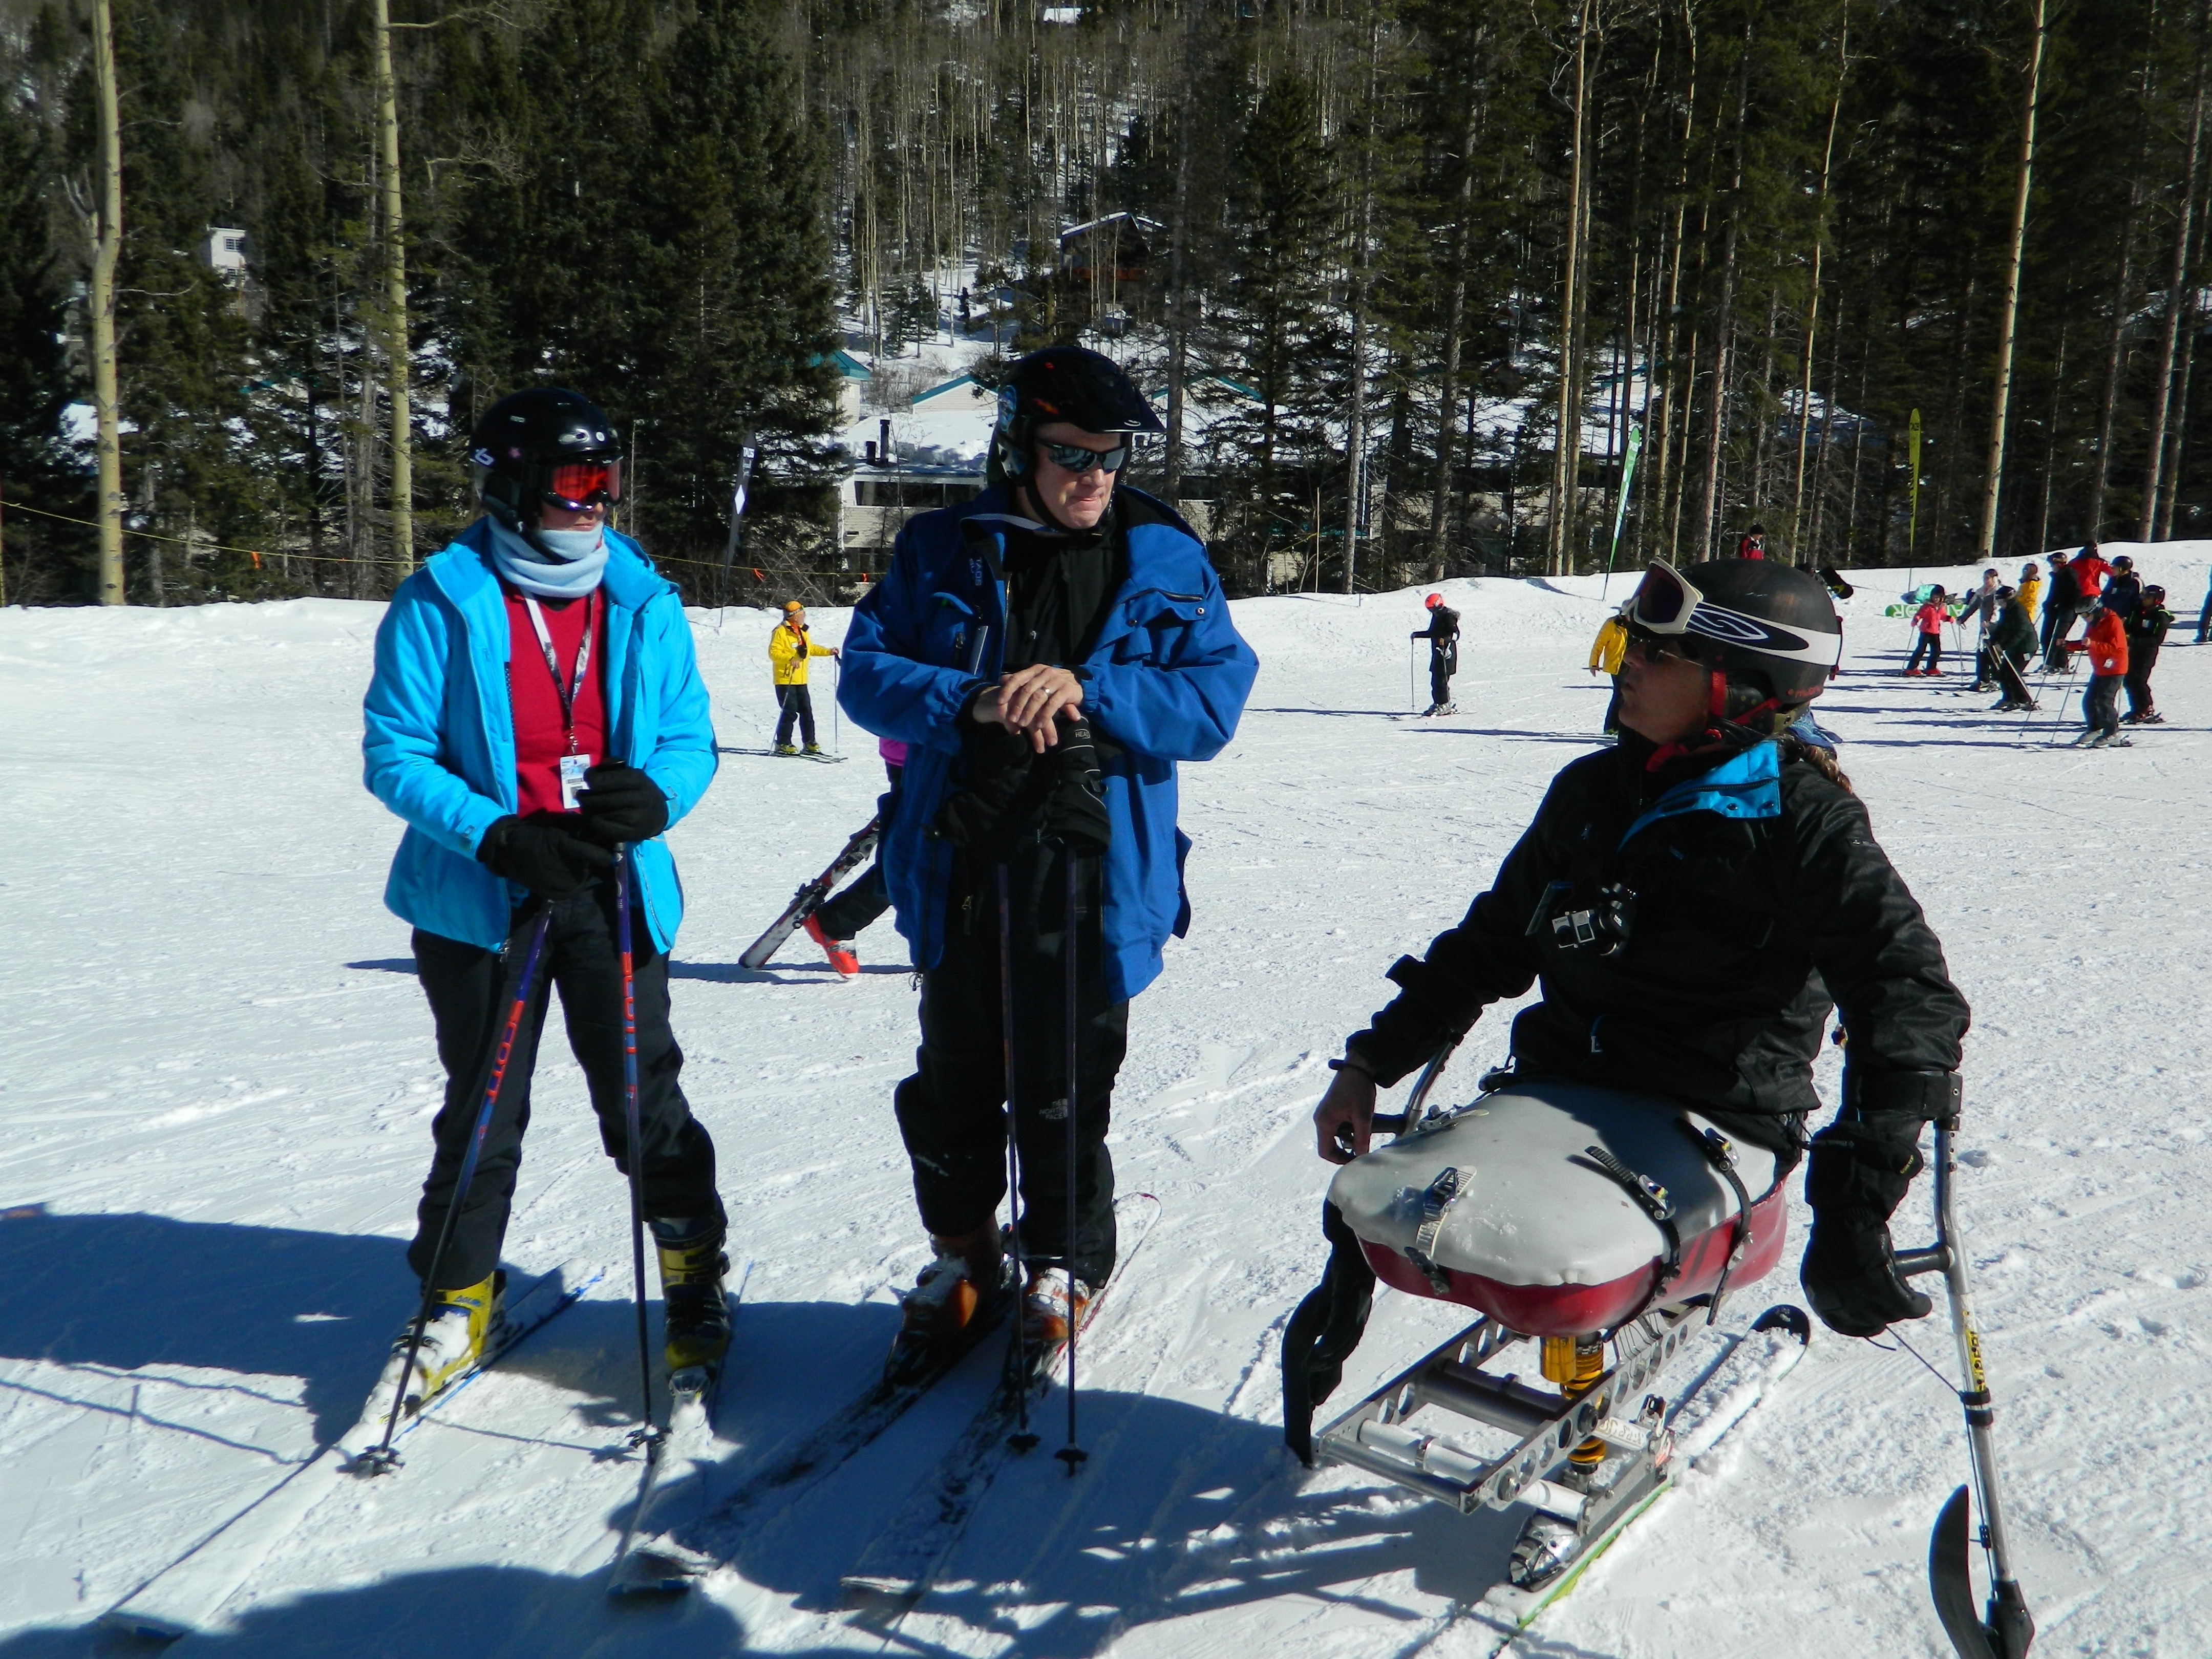 Three skiers, one of them disabled, confer solemnly on the slopes at Taos Ski Valley. Skiers, forest, and lodge behind.